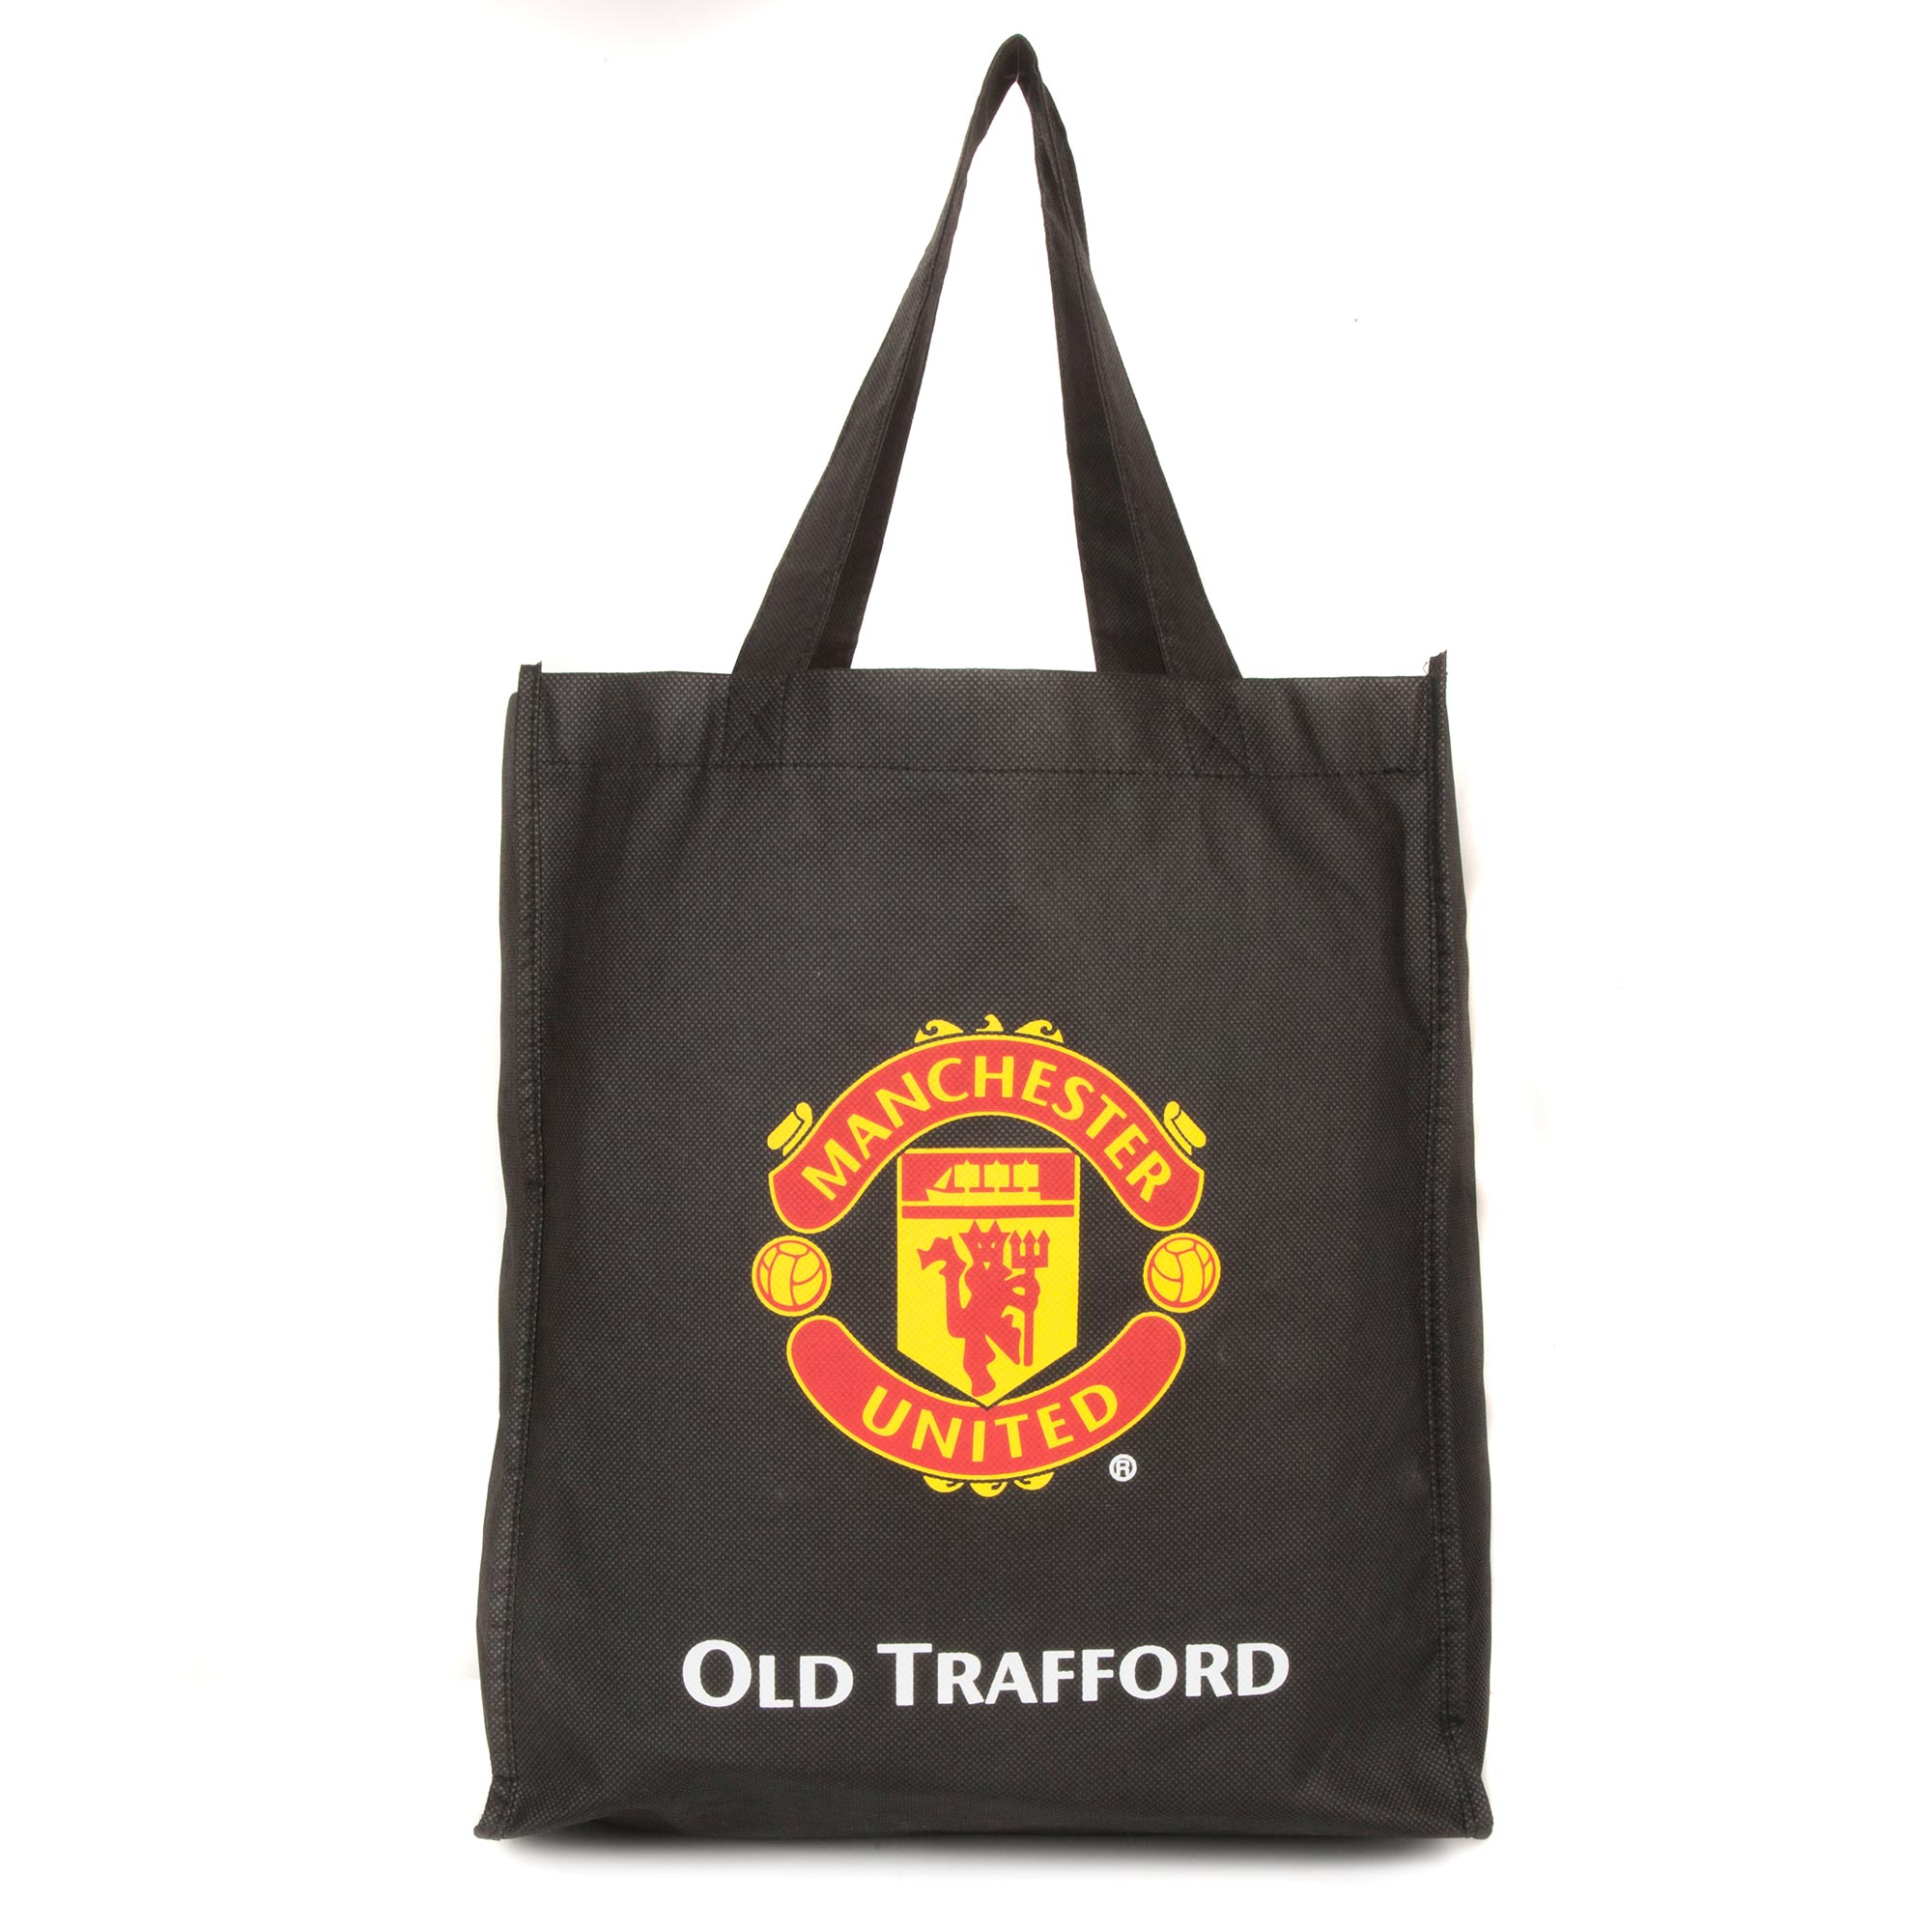 Manchester United Reusable Tote Bag - Black